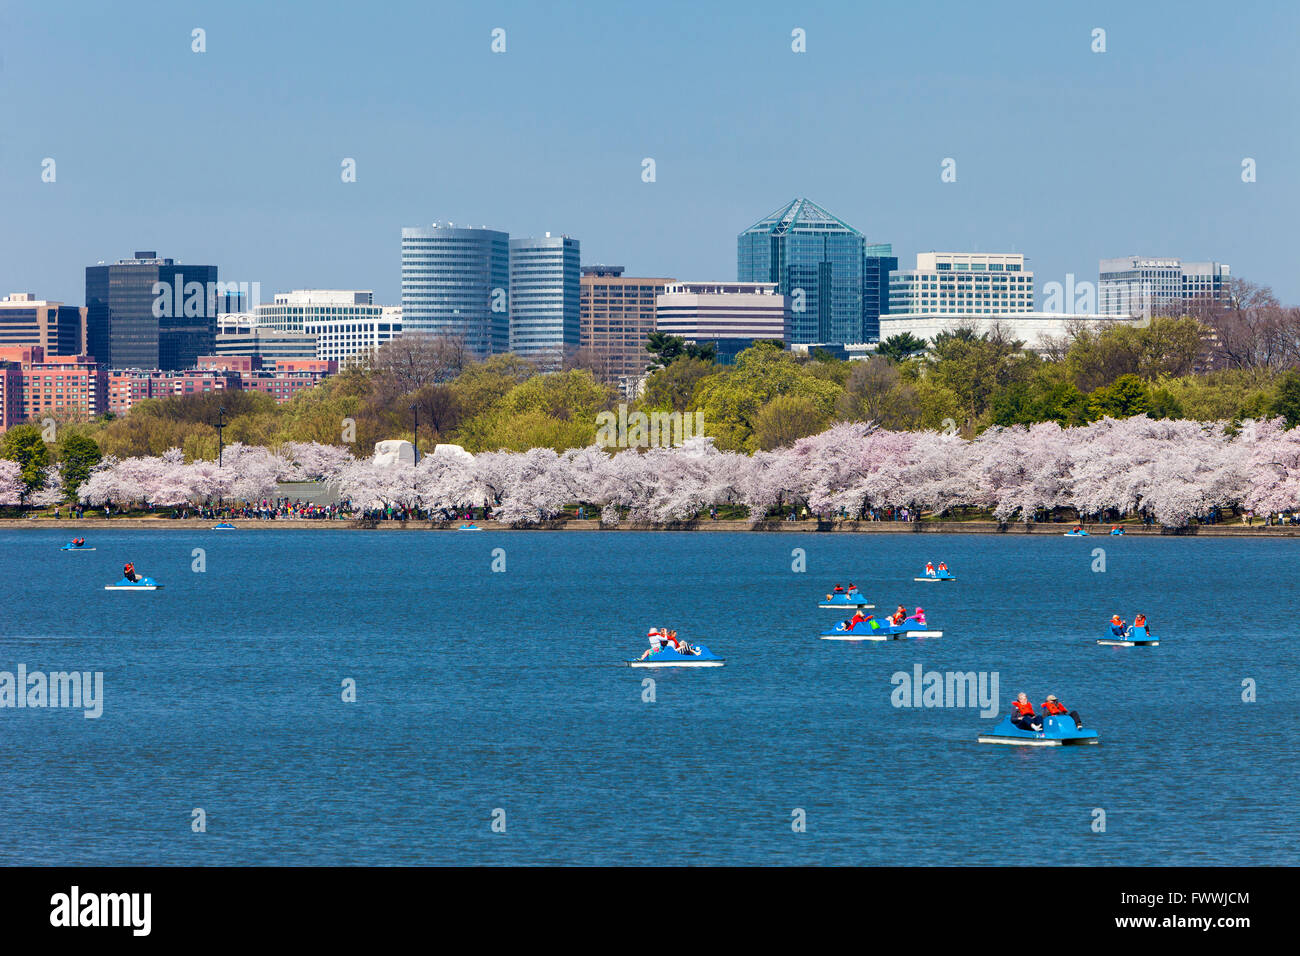 Washington, D.C., Cherry Blossoms.  Paddle-Boating on the Tidal Basin.  Rosslyn, Virginia in Background. - Stock Image